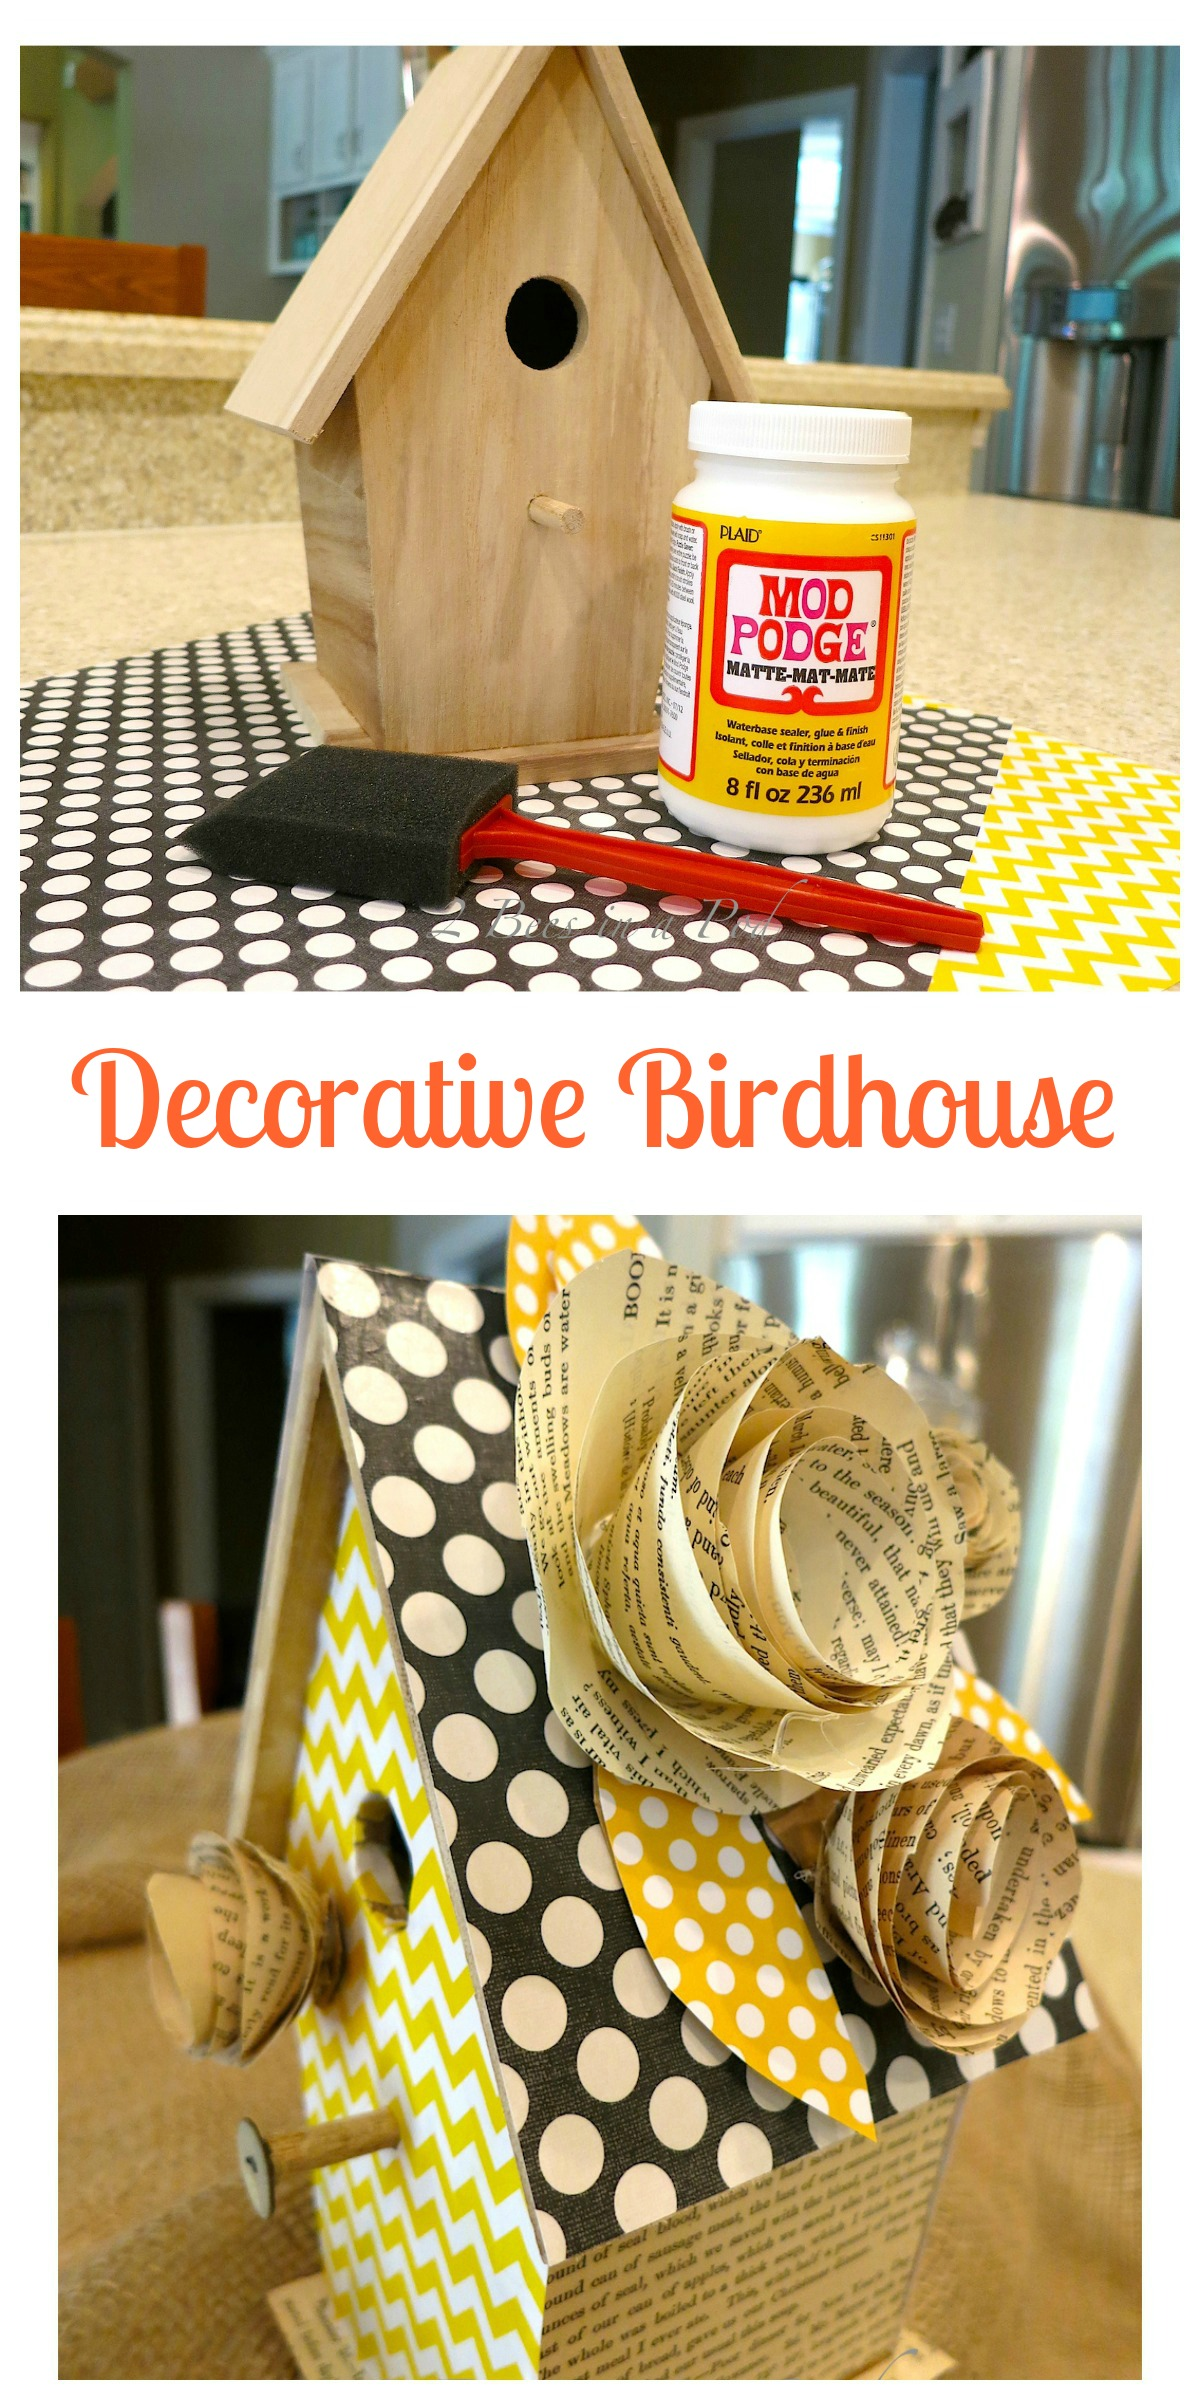 Decorative birdhouse using scrapbook paper, antique book pages and Mod Podge